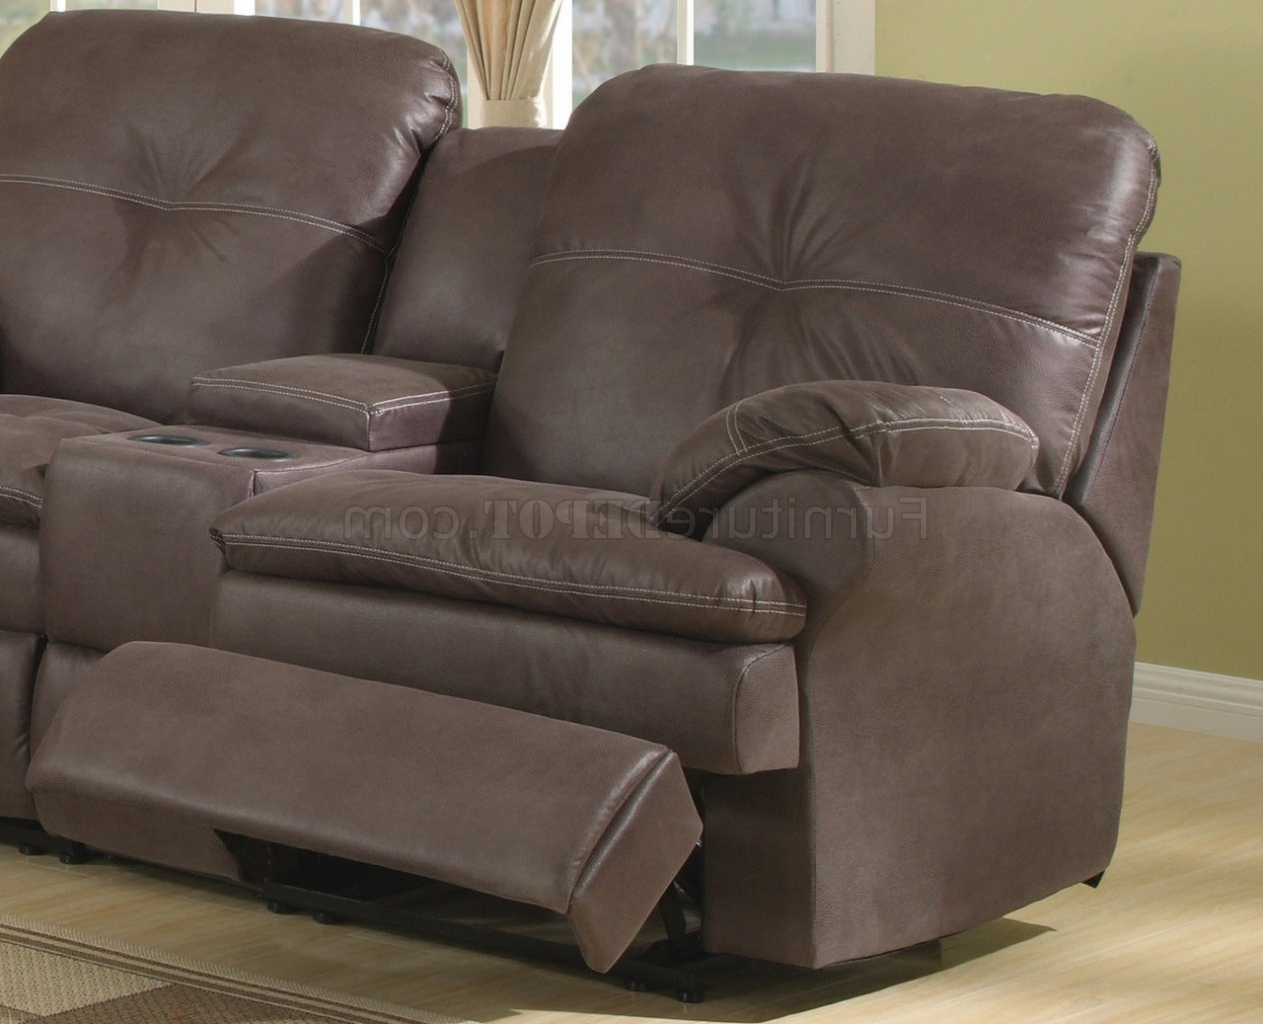 Brown Upgraded Fabric Modern Reclining Sectional Sofa With Regard To Famous Mireille Modern And Contemporary Fabric Upholstered Sectional Sofas (View 18 of 20)